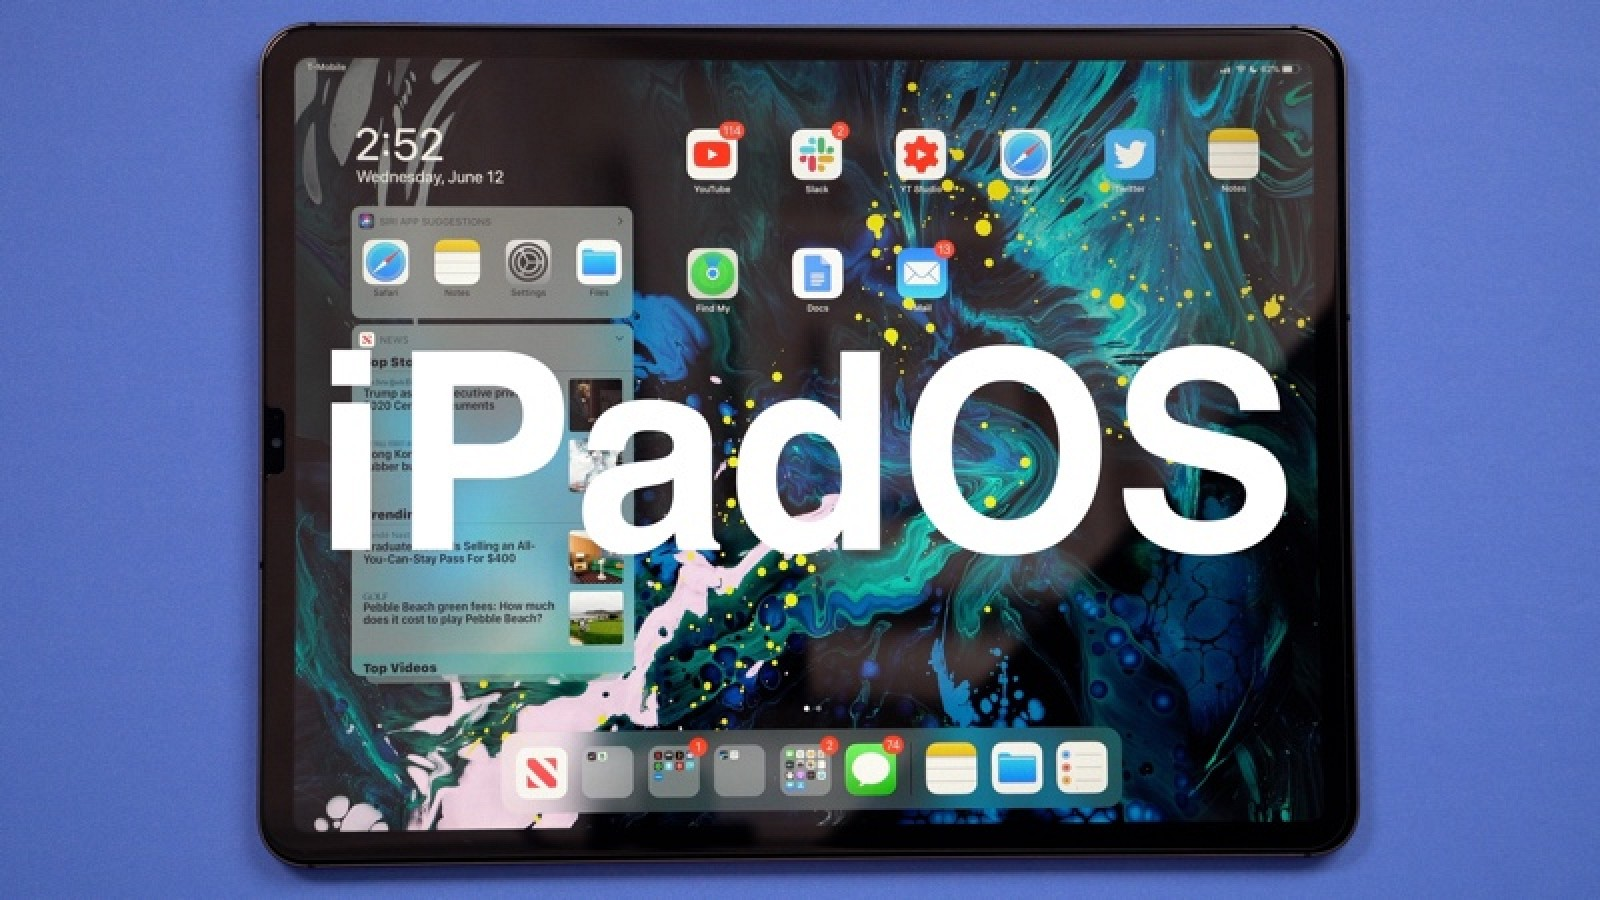 Hands-On With Apple's New iPadOS Software - MacRumors